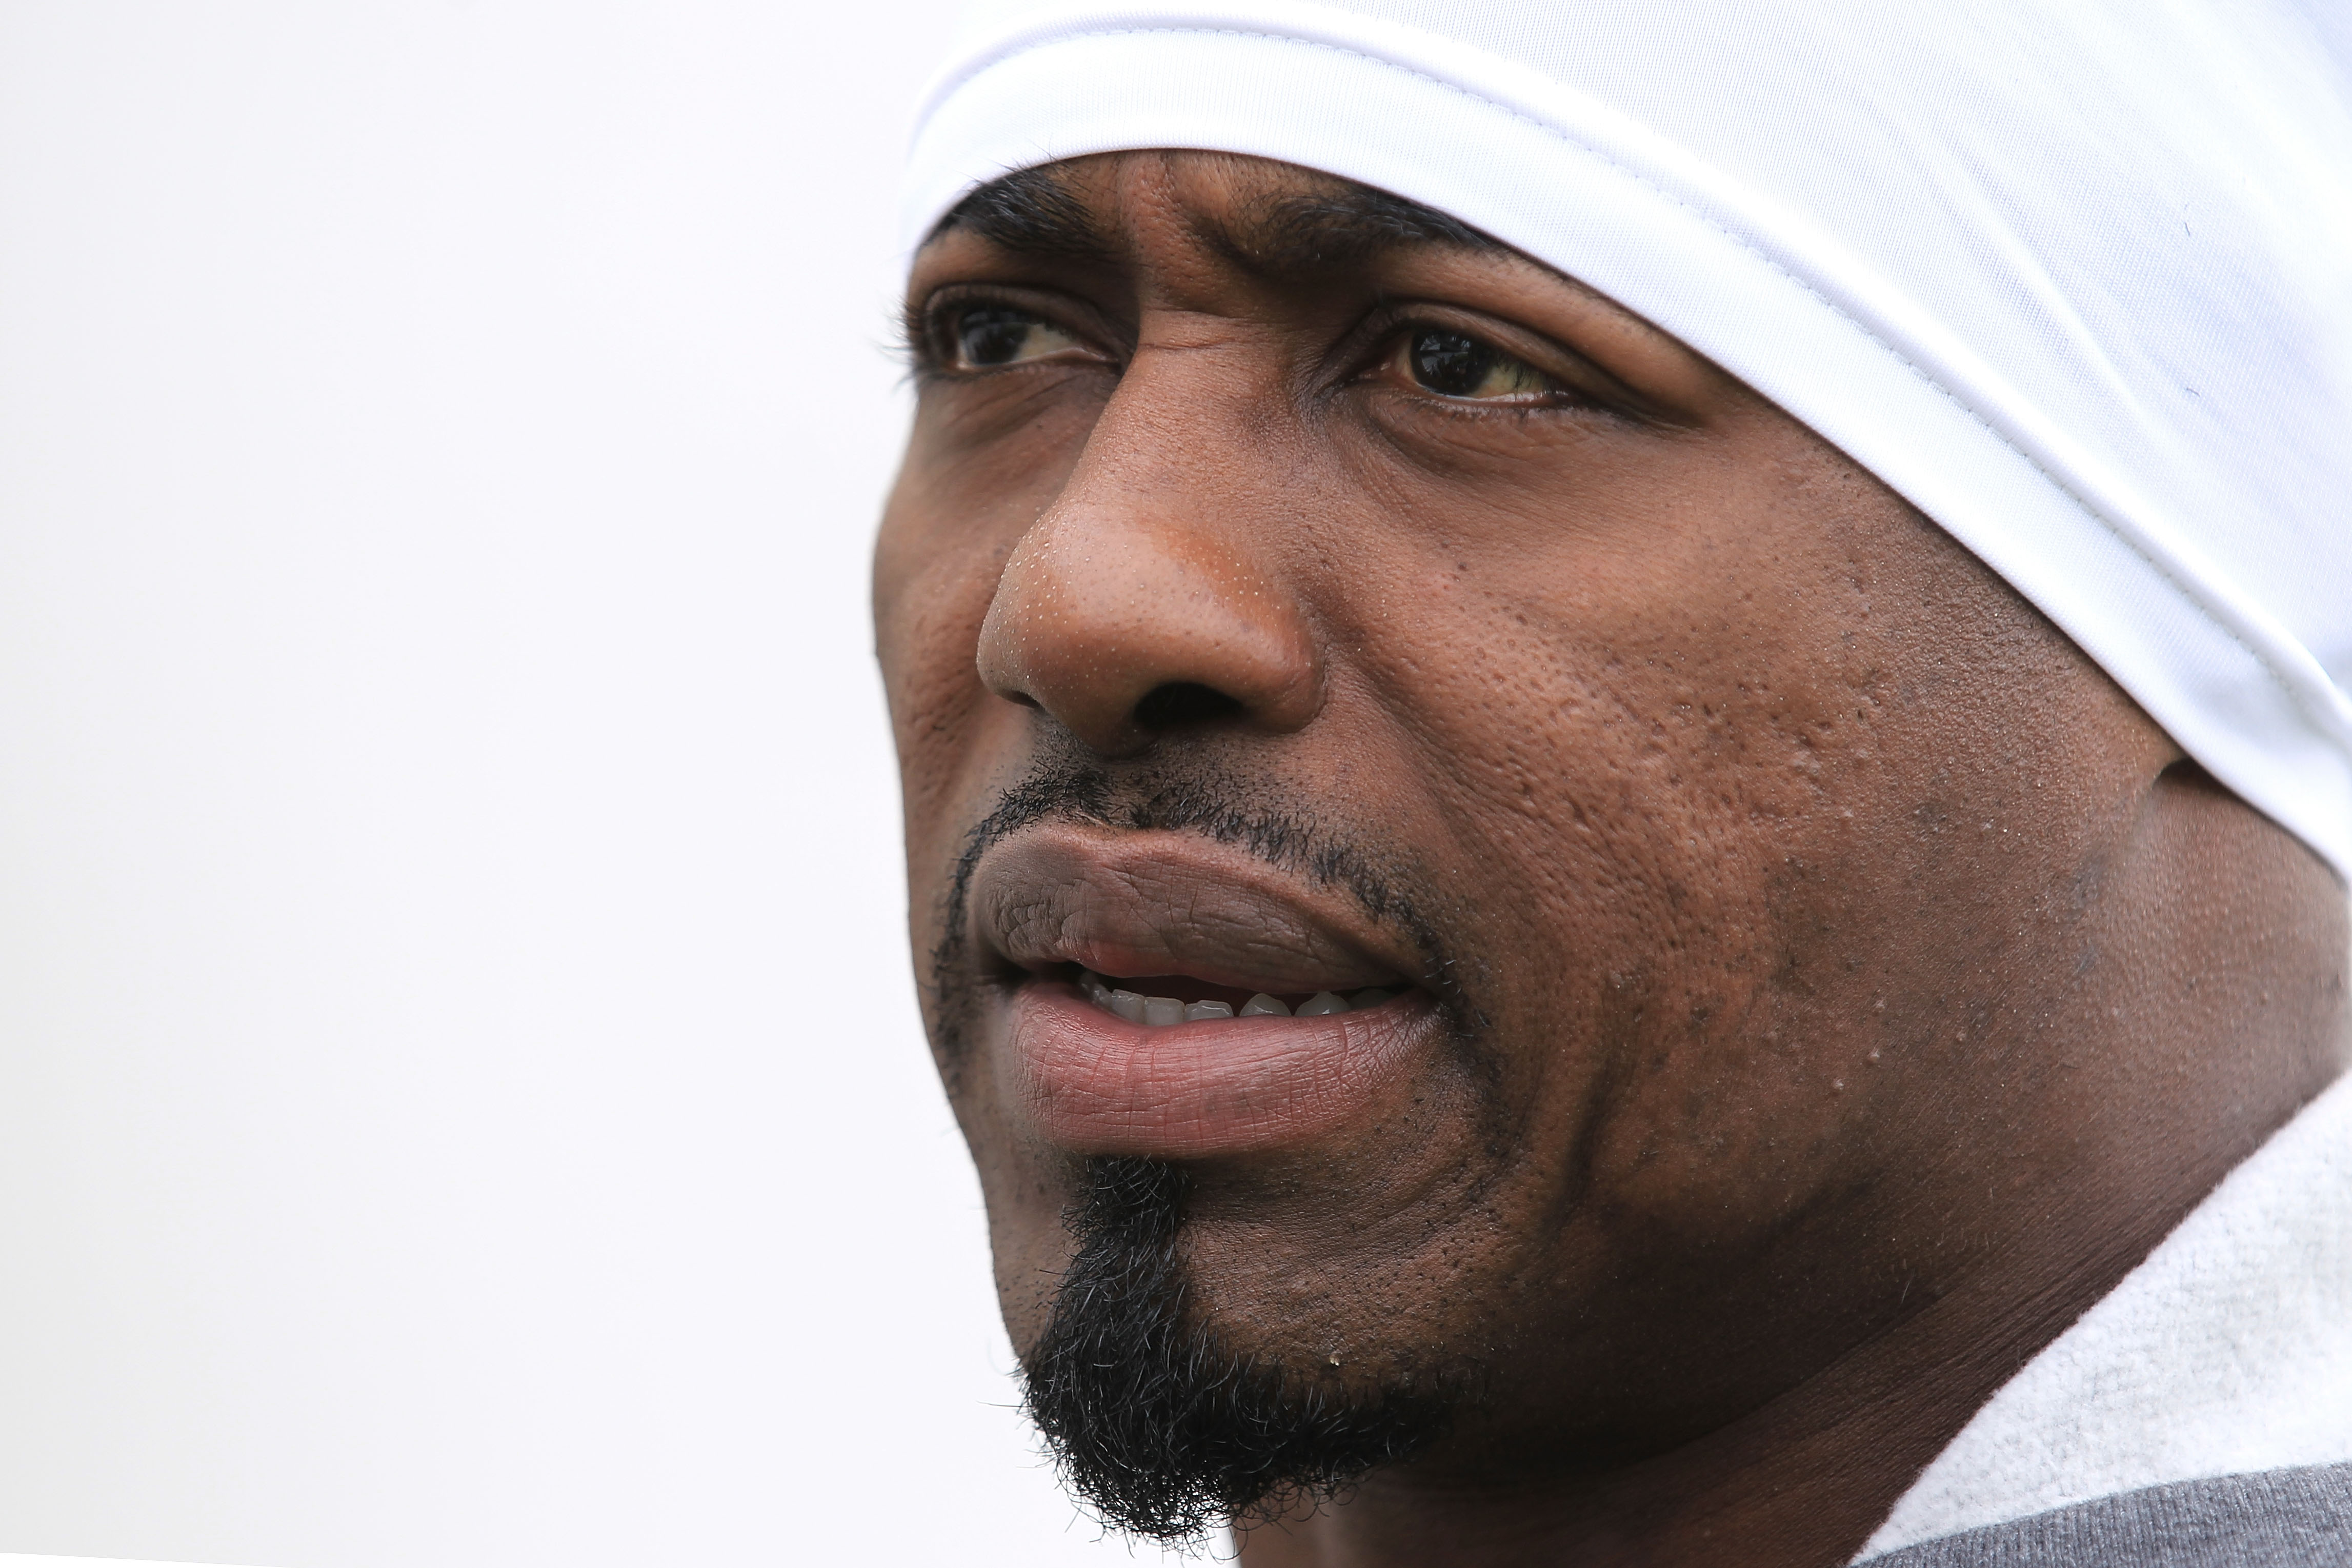 LONDON, ENGLAND - OCTOBER 29:  Brian Dawkins of the Denver Broncostalks to the media prior to the start of a team training session at The Brit Oval on October 29, 2010 in London, England. The Denver Broncos will play the San Francisco 49ers at Wembley Sta